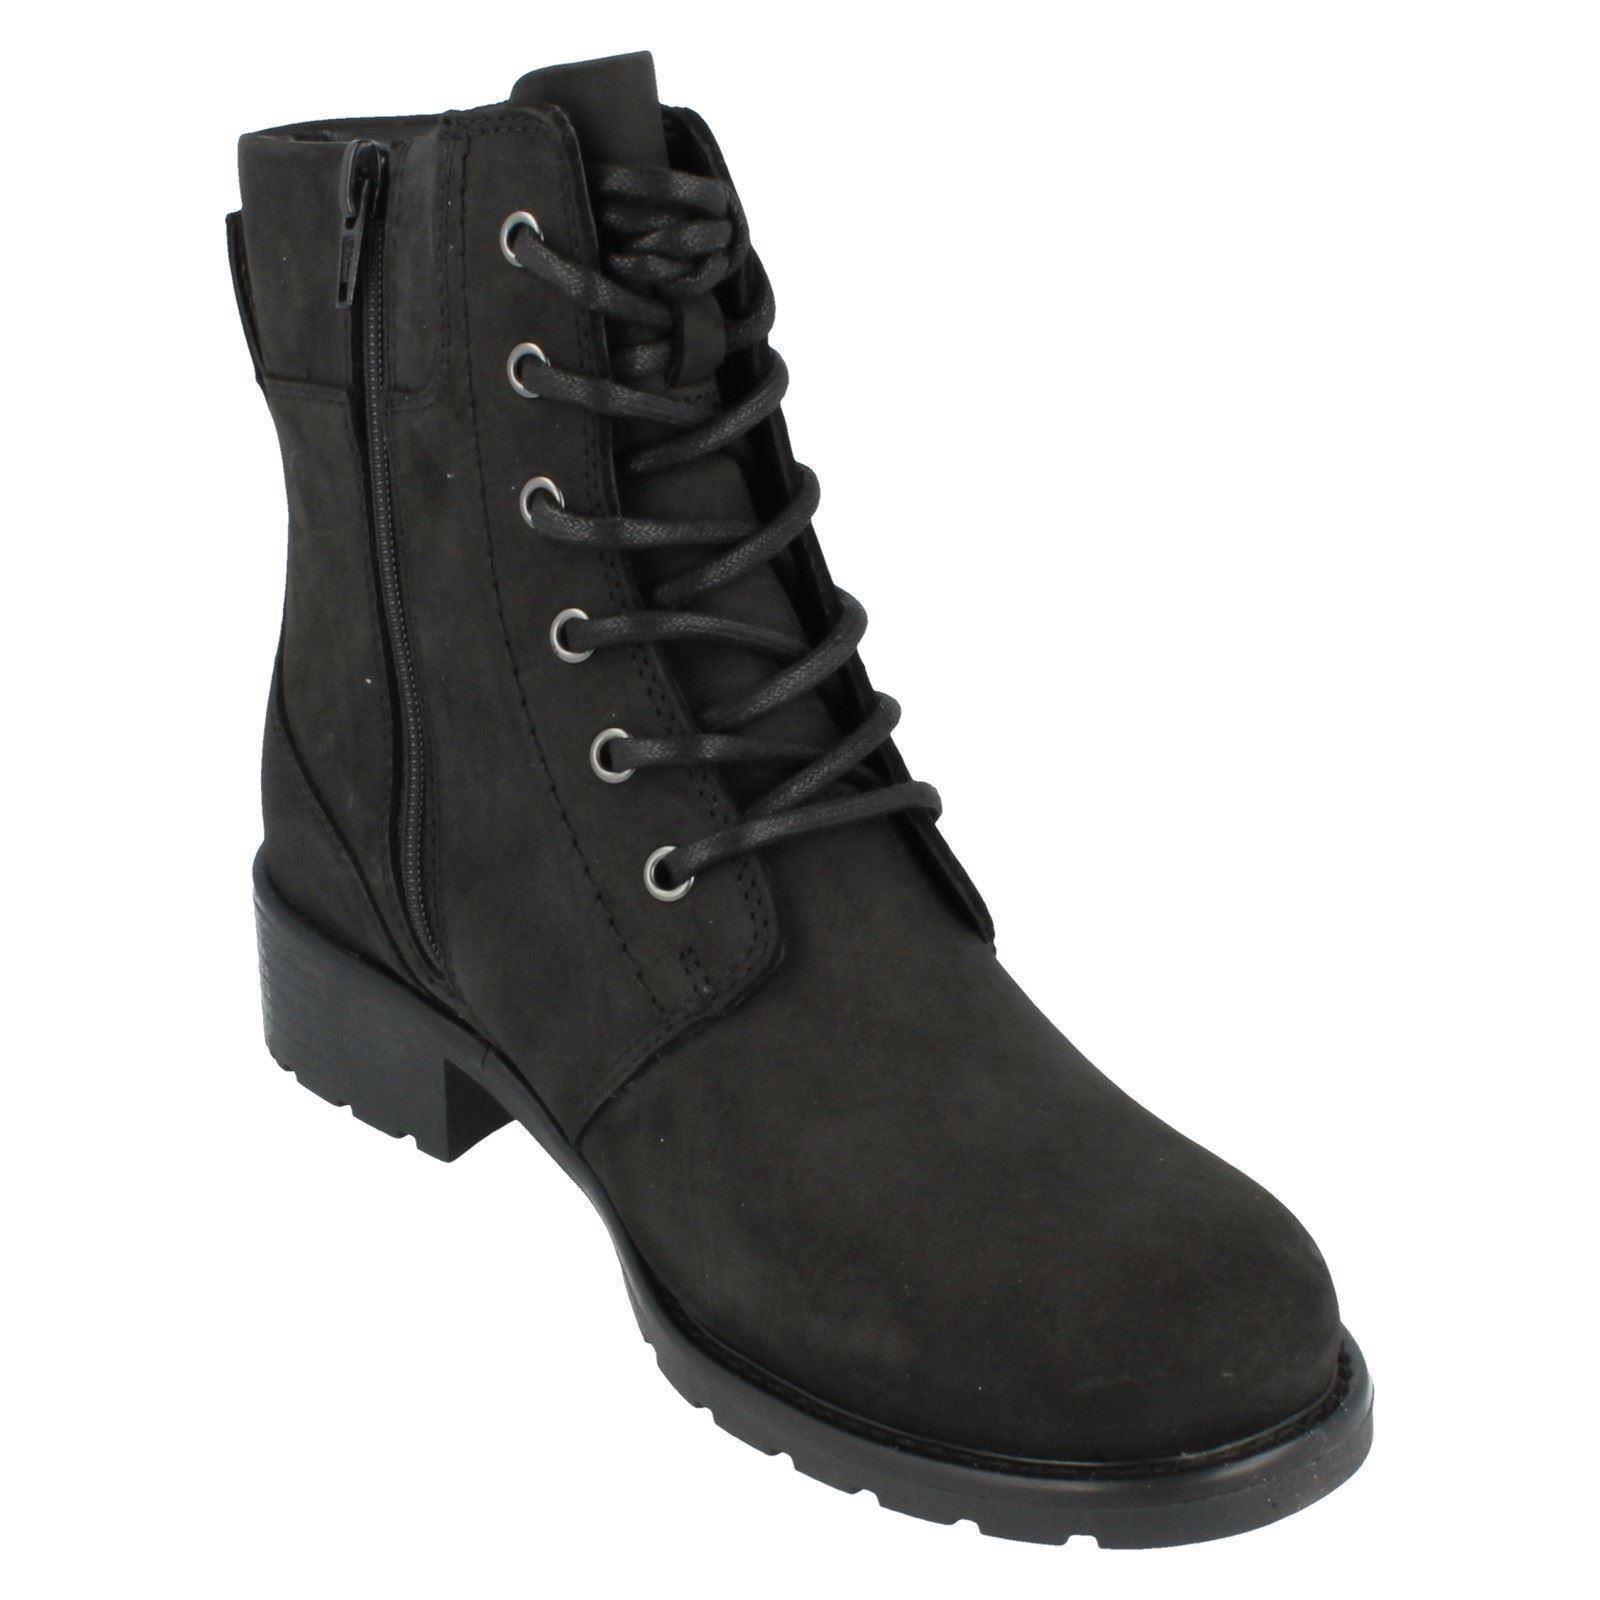 Ladies-Clarks-Casual-Lace-Up-Inside-Zip-Nubuck-Leather-Ankle-Boots-Orinoco-Spice thumbnail 8